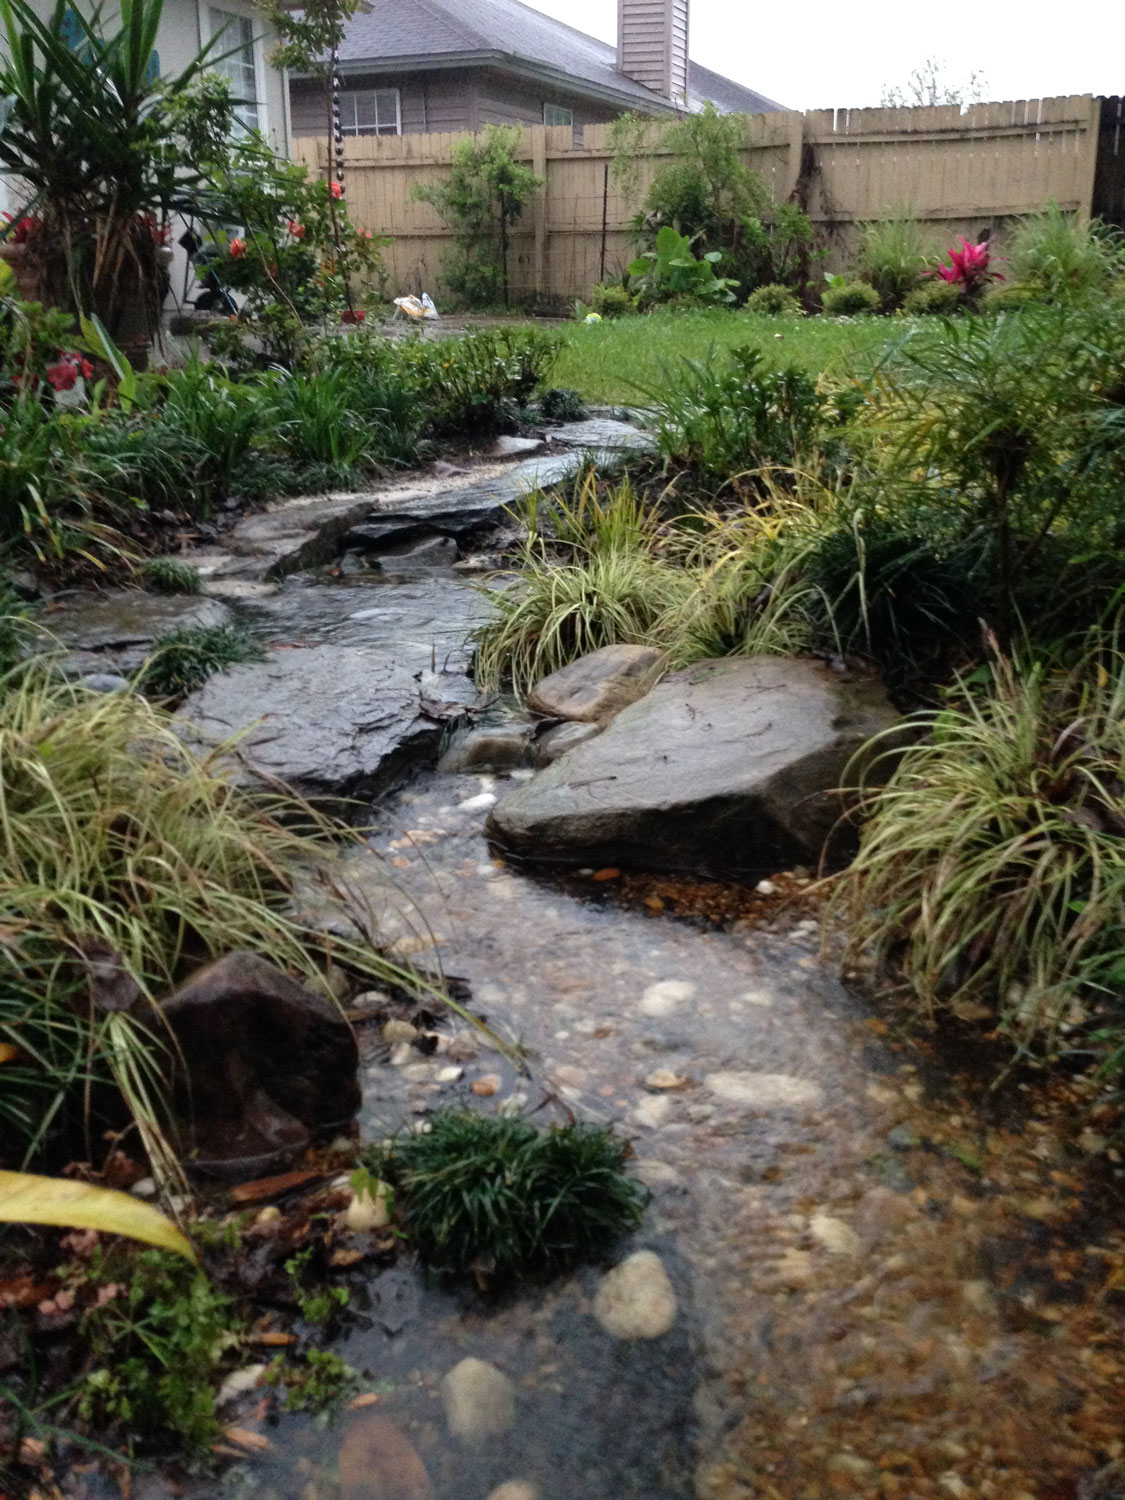 The Rainforest Garden How to Design a Dry Creek Bed 10 Tips